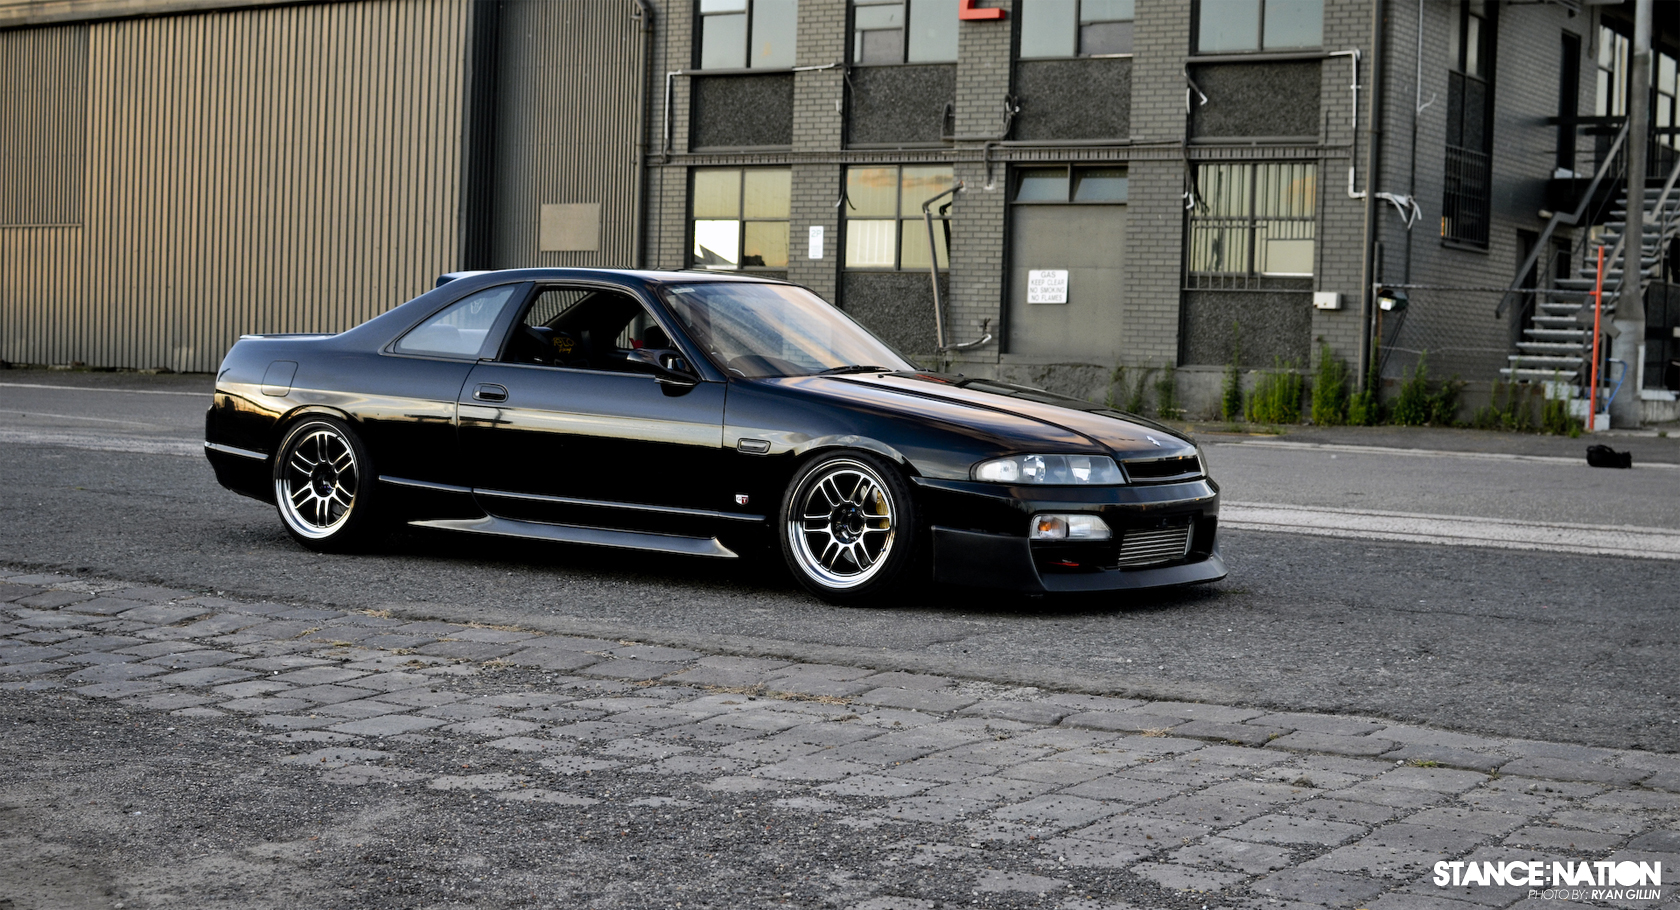 That One R33 Stancenation Form Gt Function